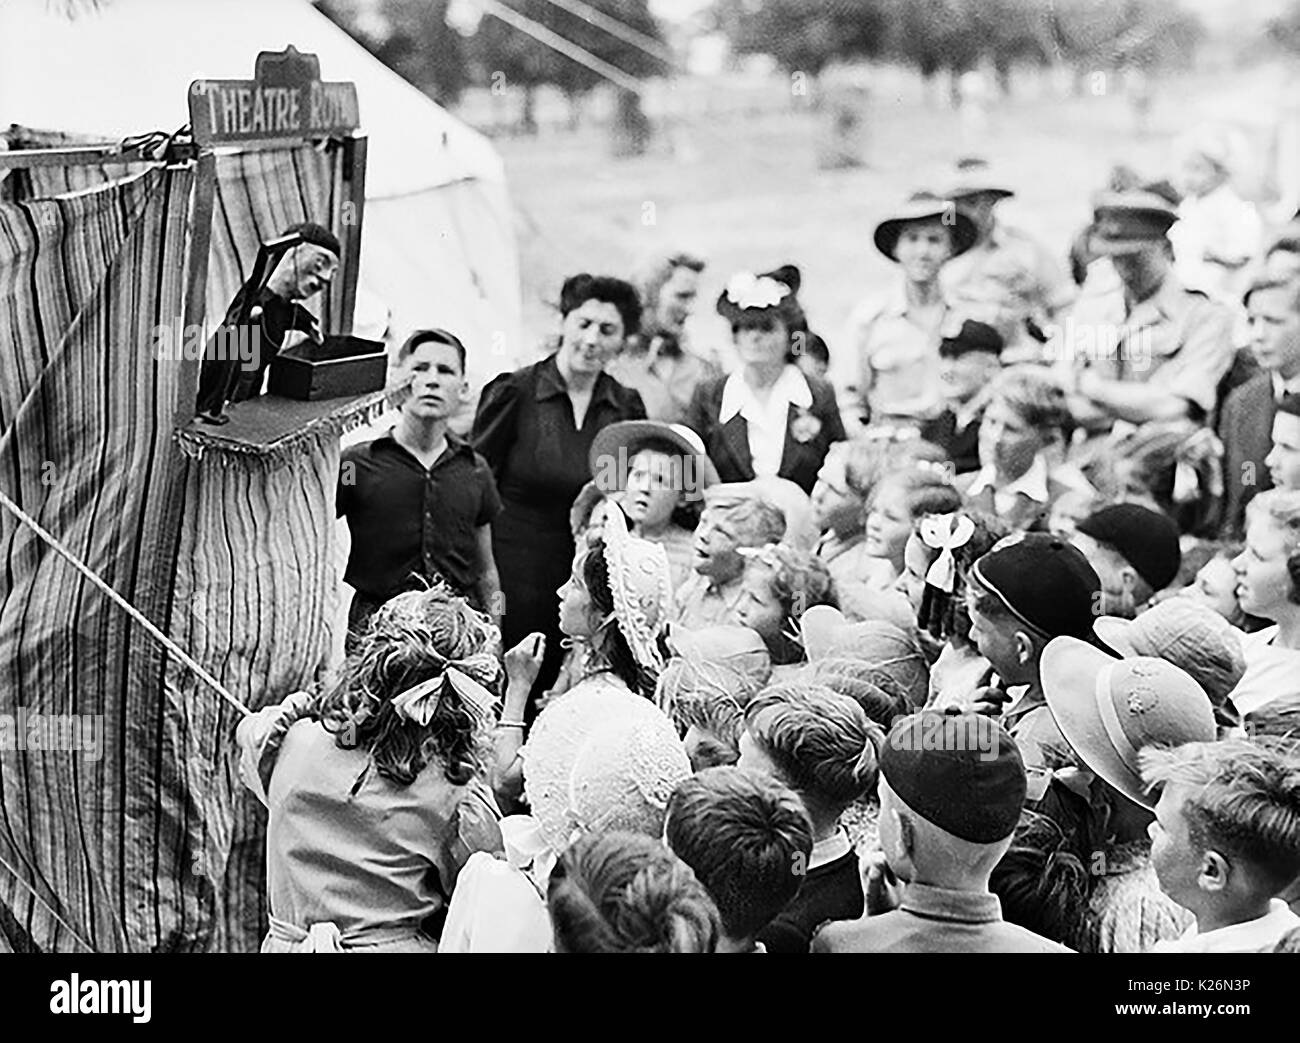 A wartime punch and Judy children's entertainment show - Location unknown but children's sun hats and Australian troops in background suggest Australia - Stock Image